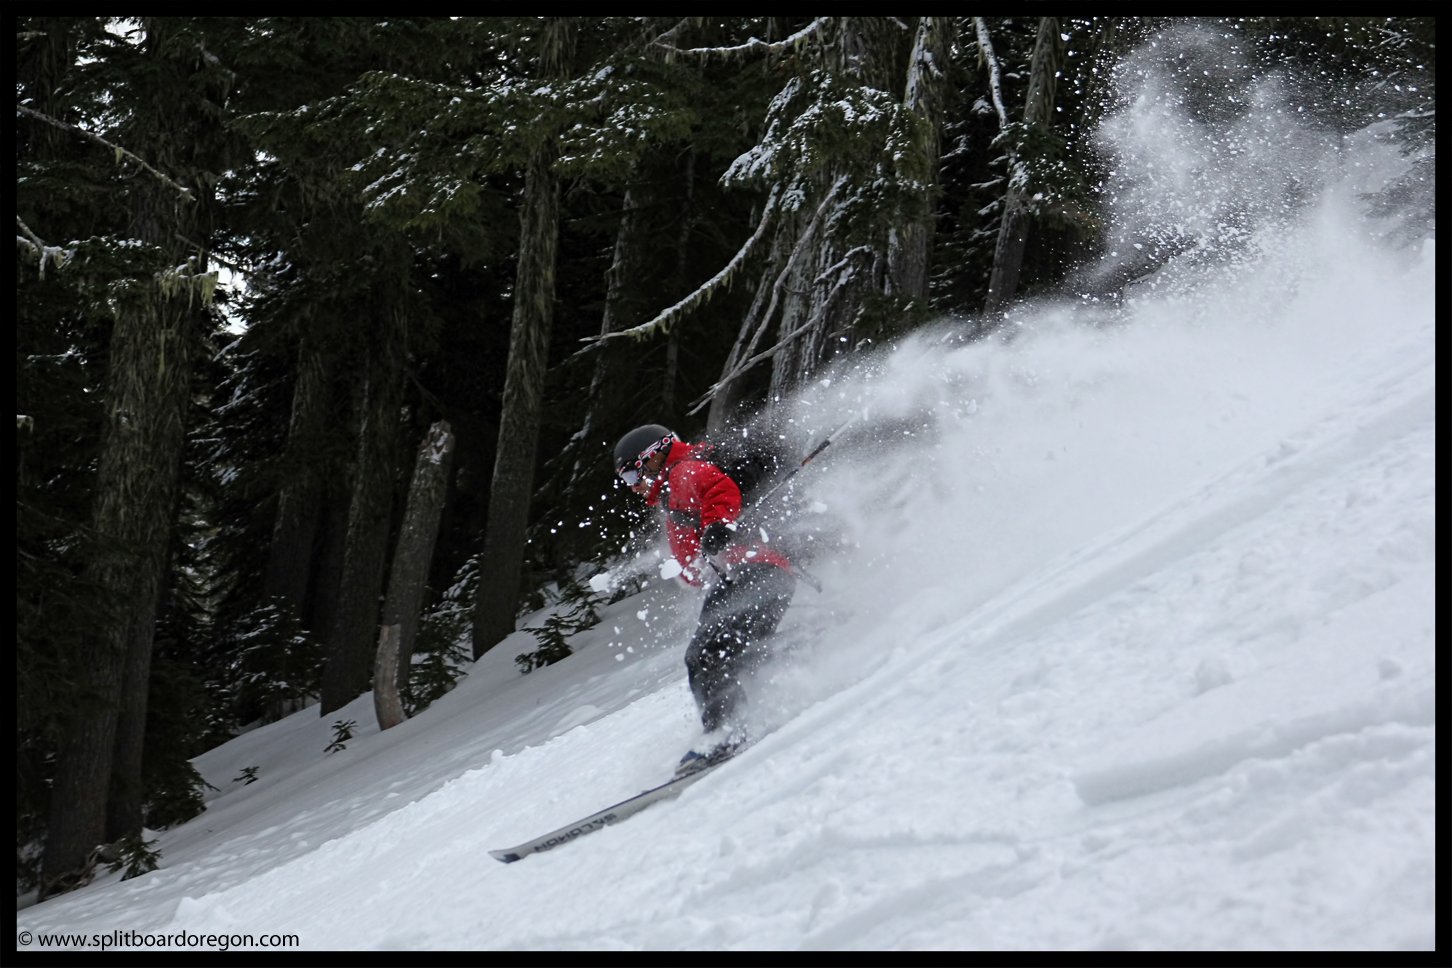 Simon floating through the pow